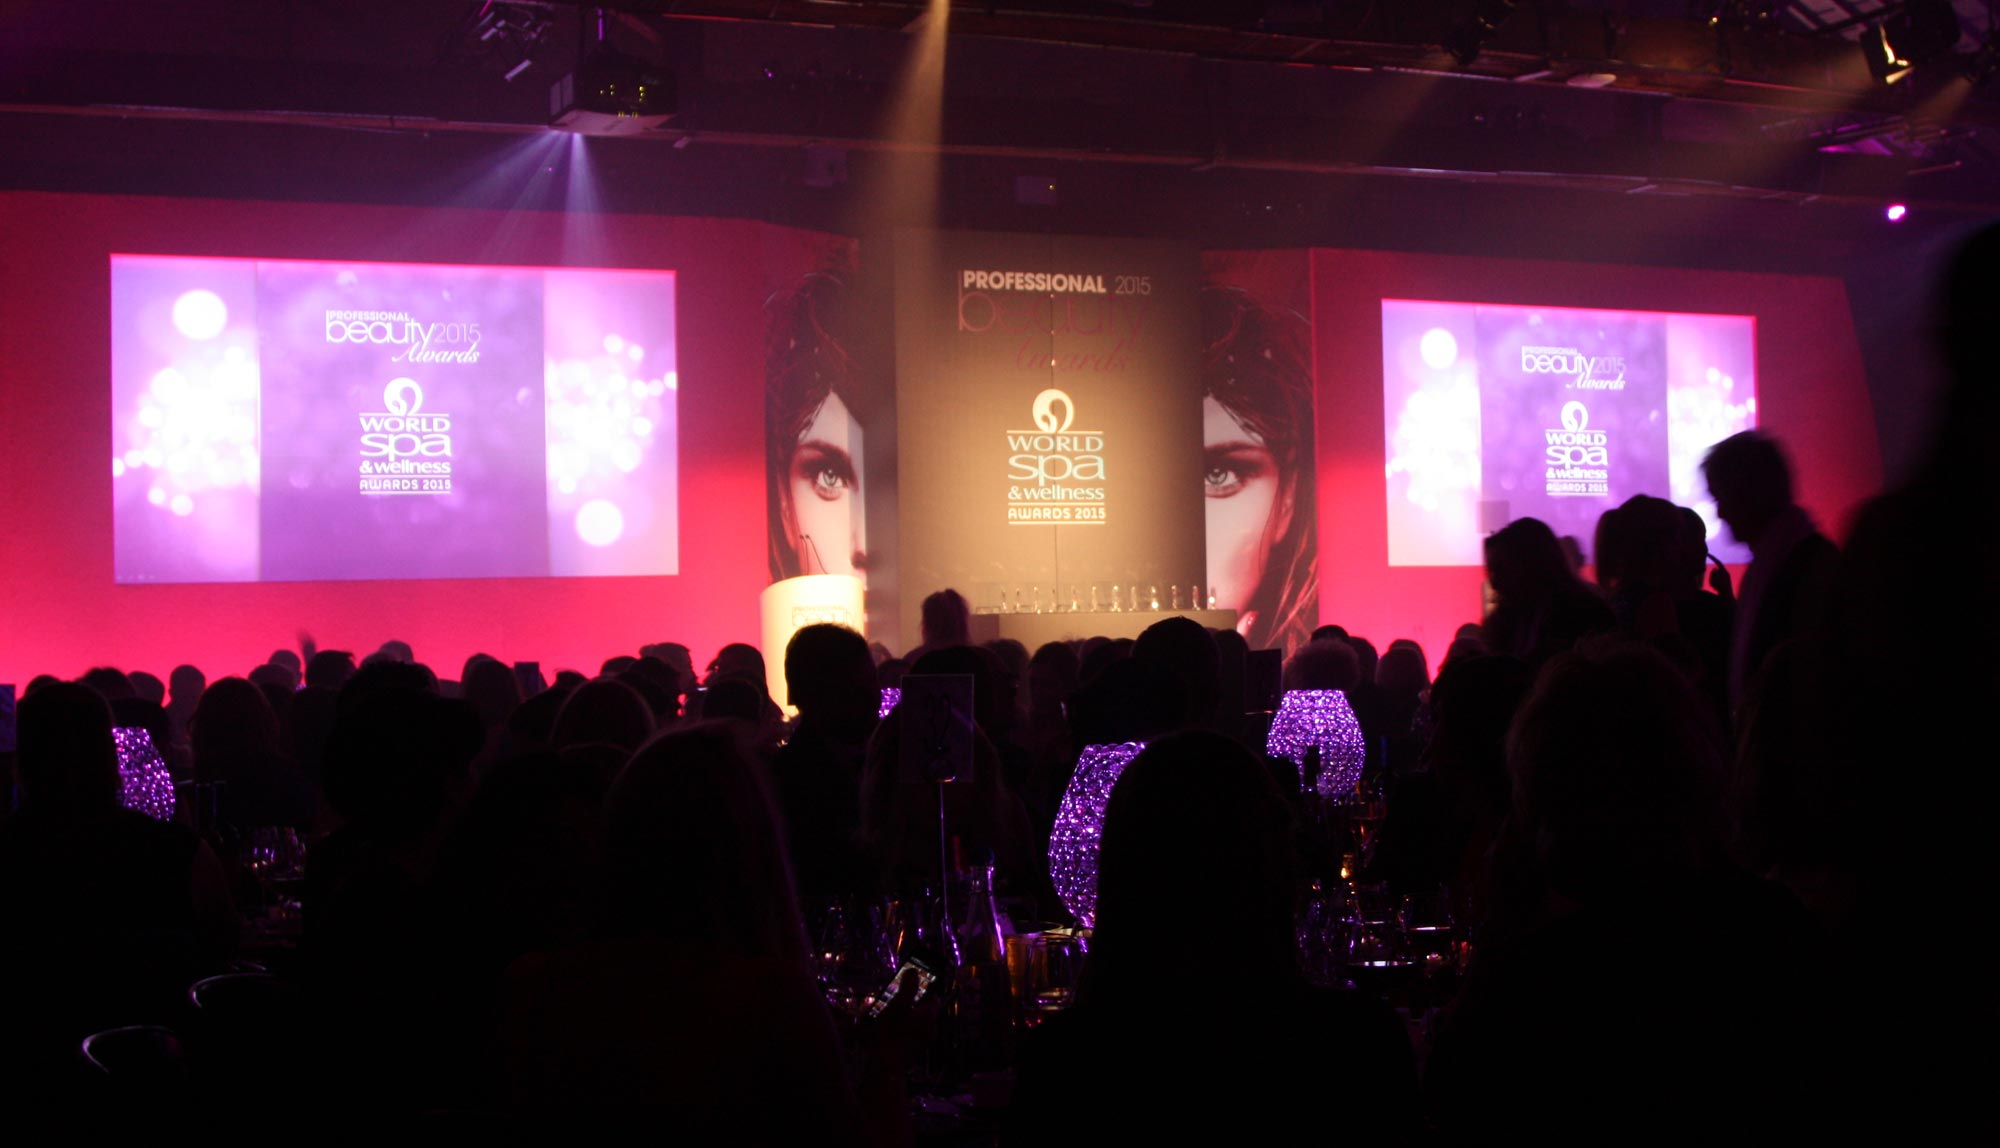 Professional Beauty Awards - Awards Night